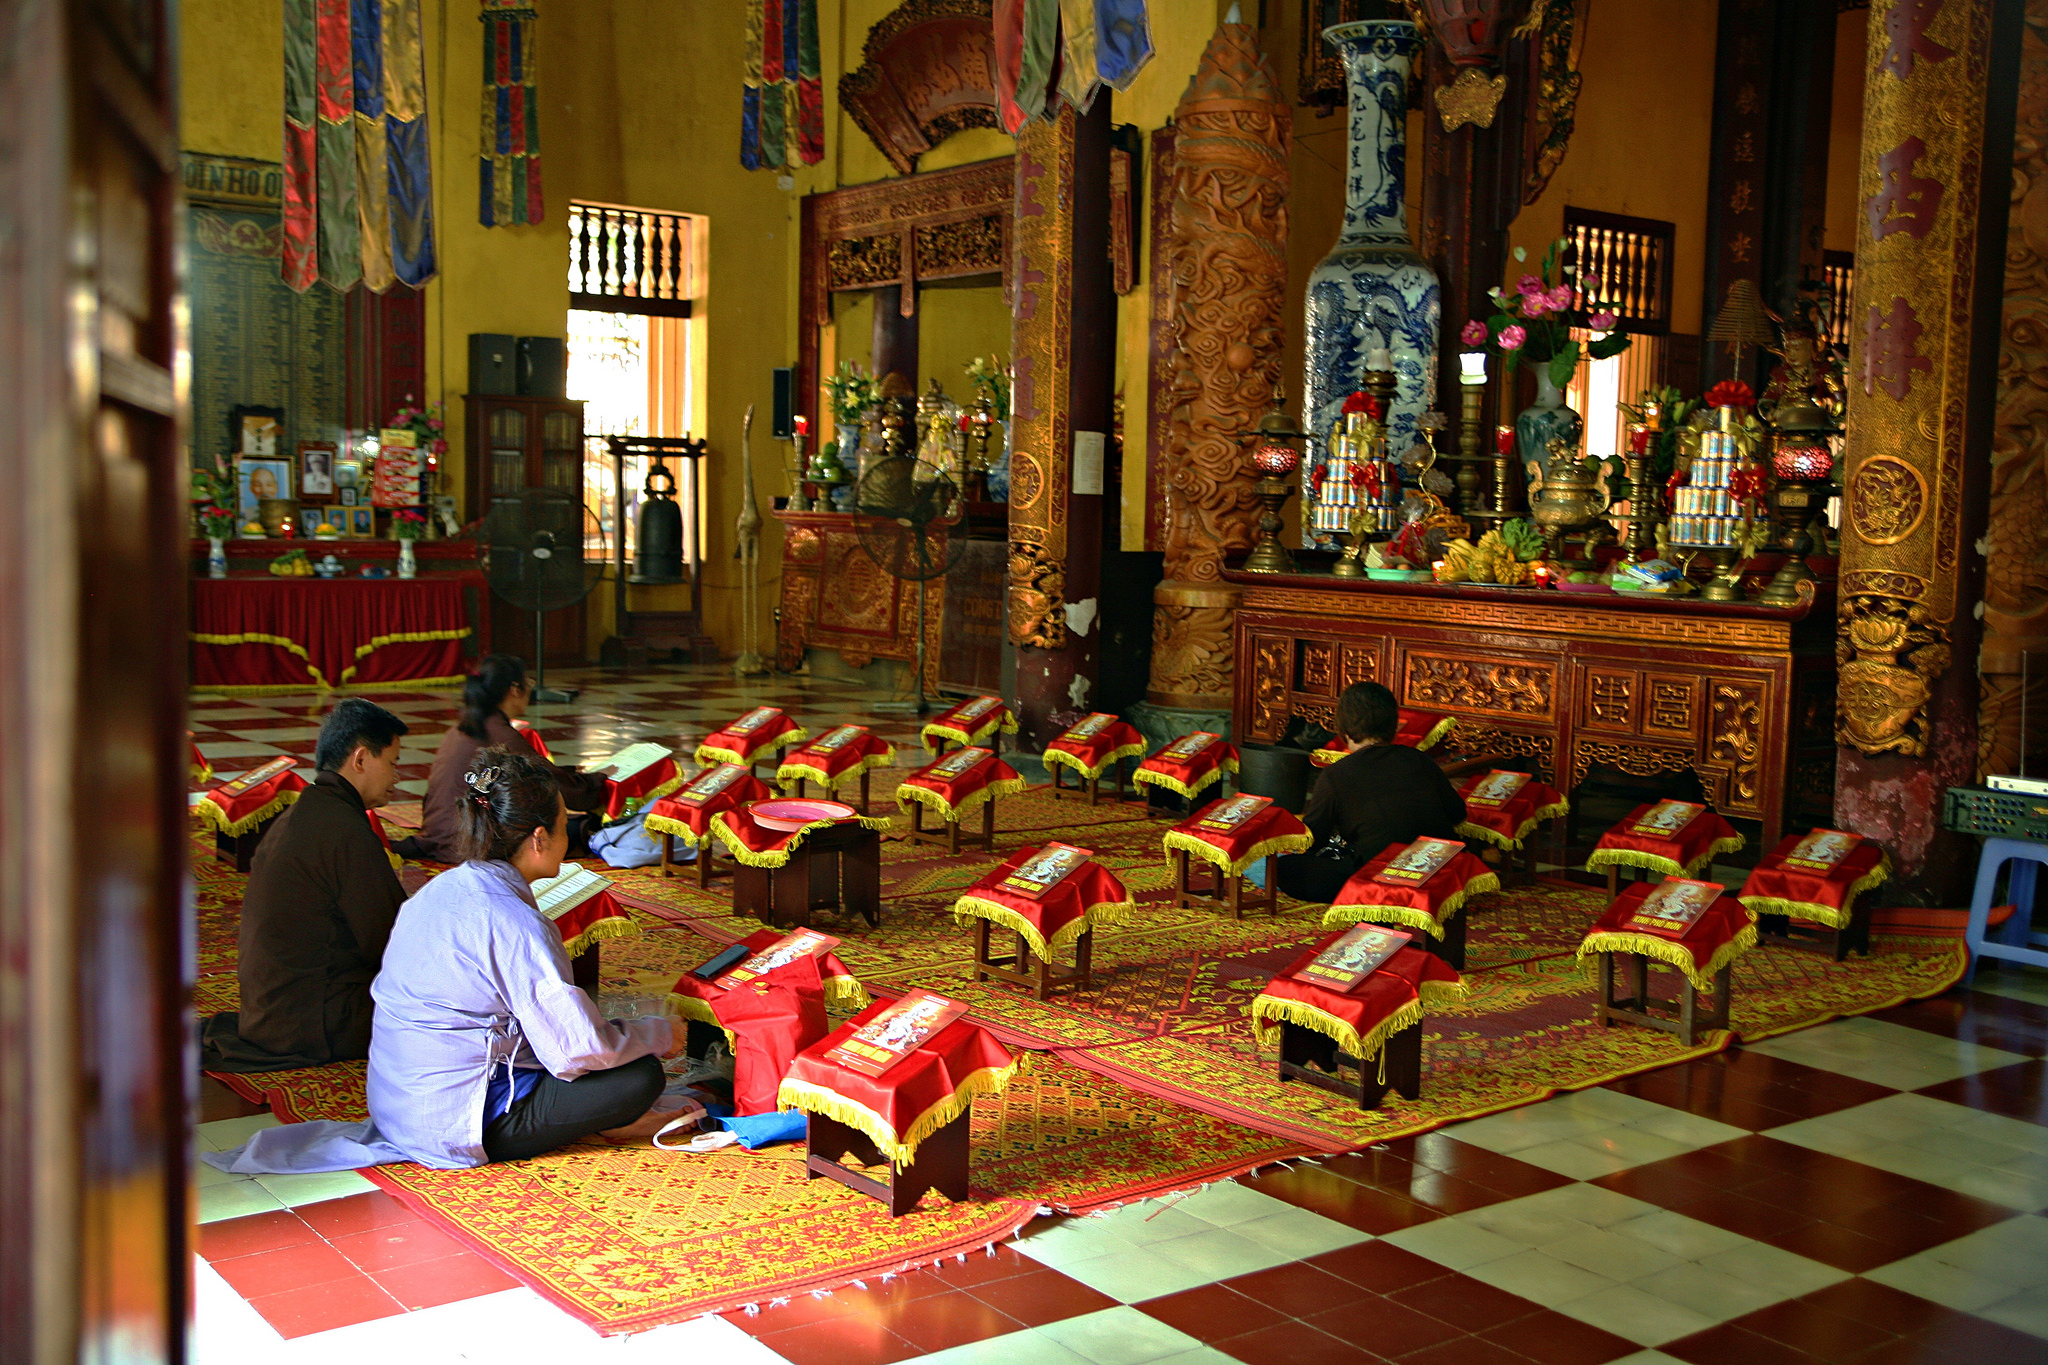 Faithful praying inside Quan Su Pagoda, Hanoi